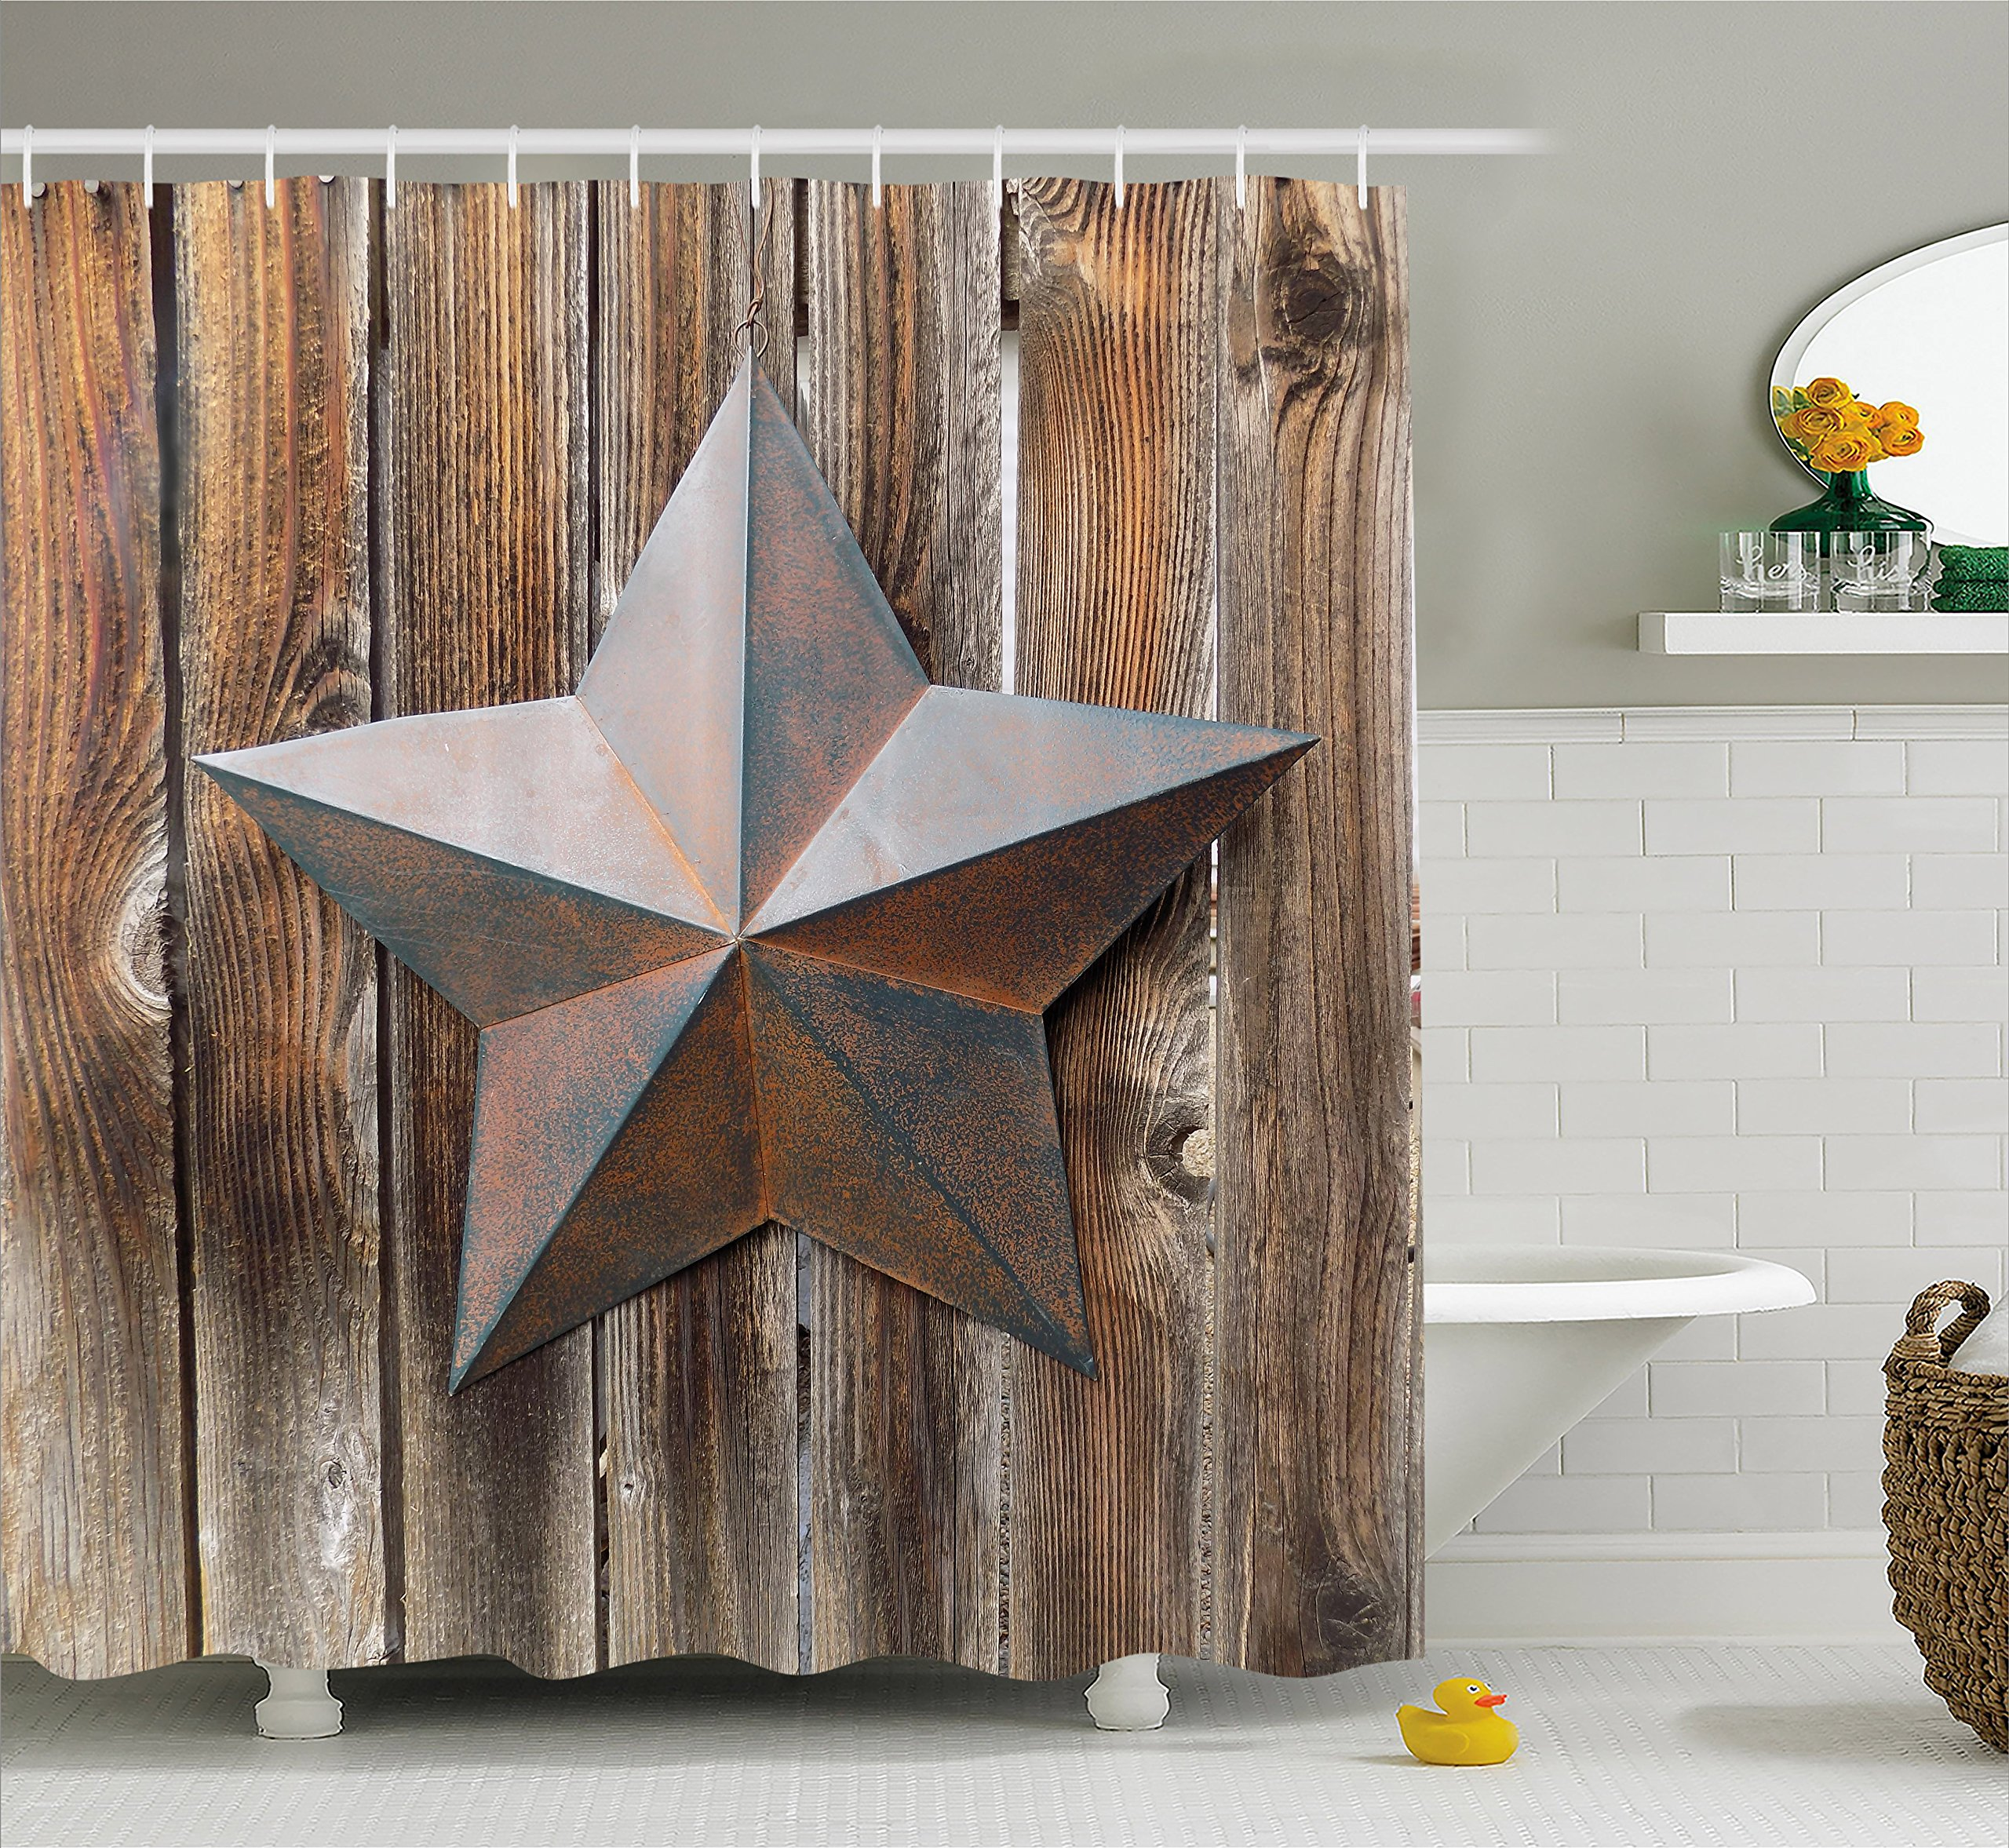 Ambesonne Primitive Country Decor Shower Curtain, Antique Rusty Star Figure on Weathered Wooden Planks Vintage Home Image, Fabric Bathroom Decor Set with Hooks, 75 Inches Long, Brown